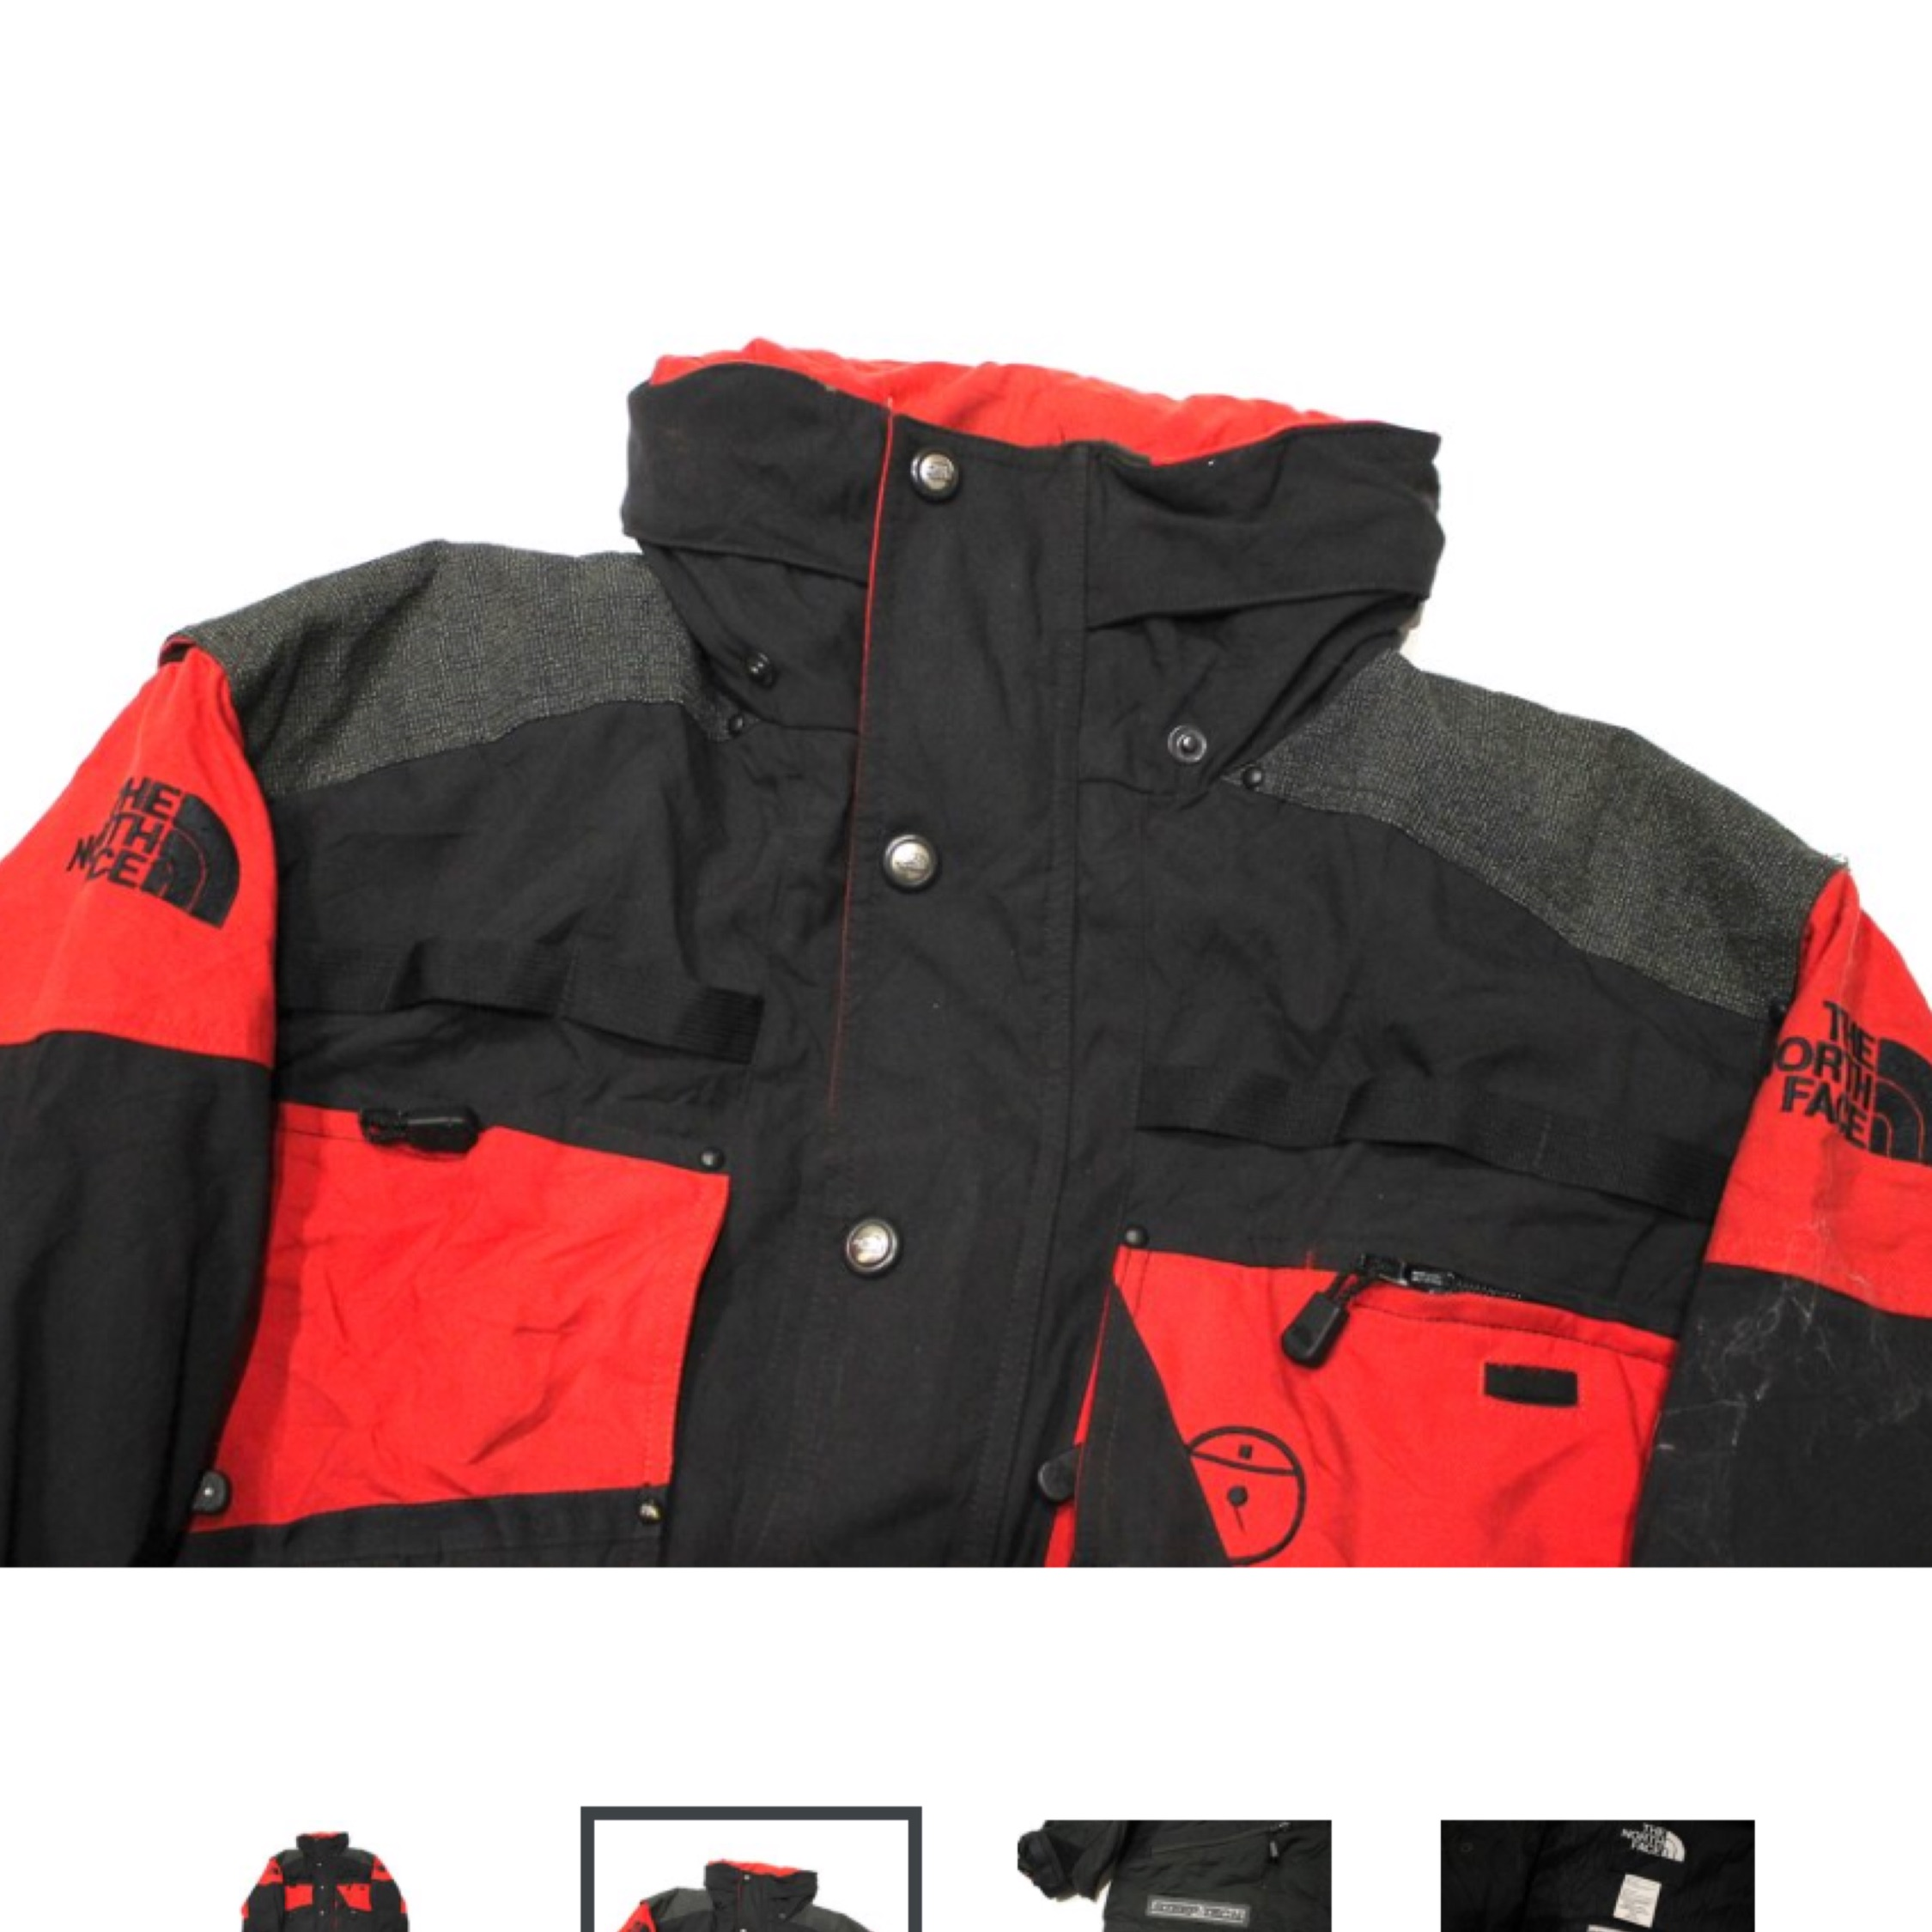 7423c0173 Vintage Red The North Face Steep Tech Jacket